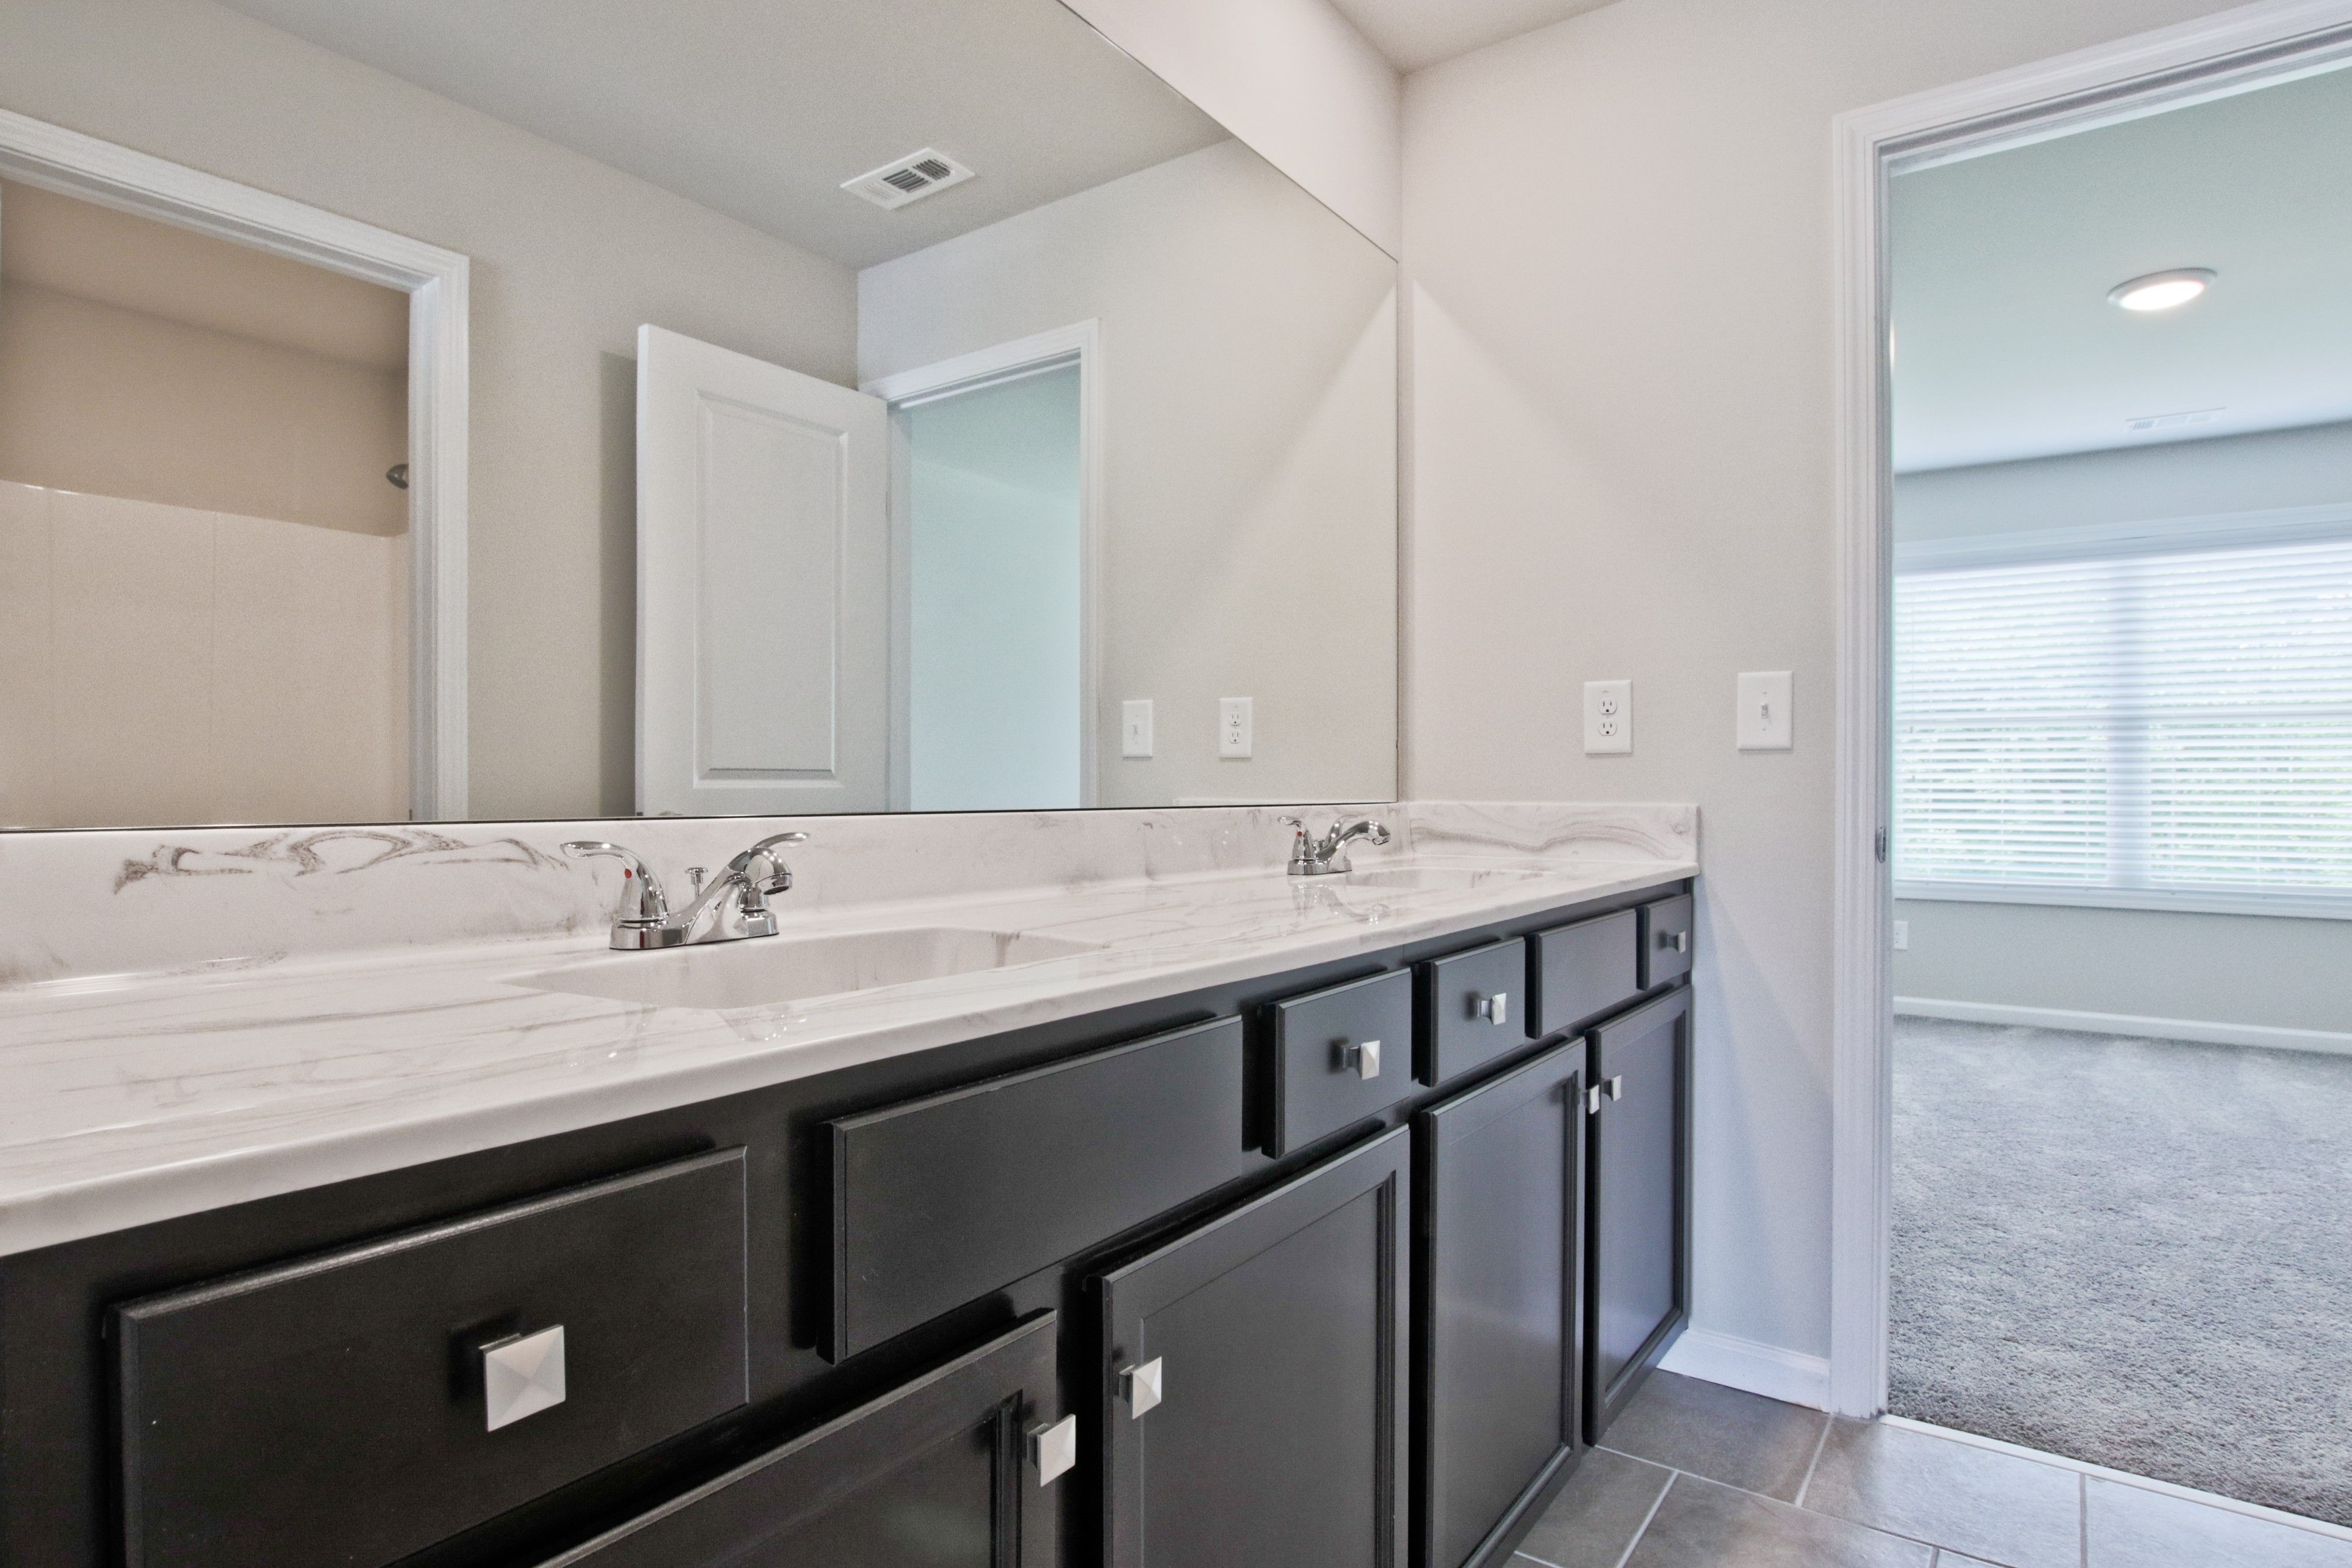 Bathroom featured in The Colton By Almont Homes in Atlanta, GA